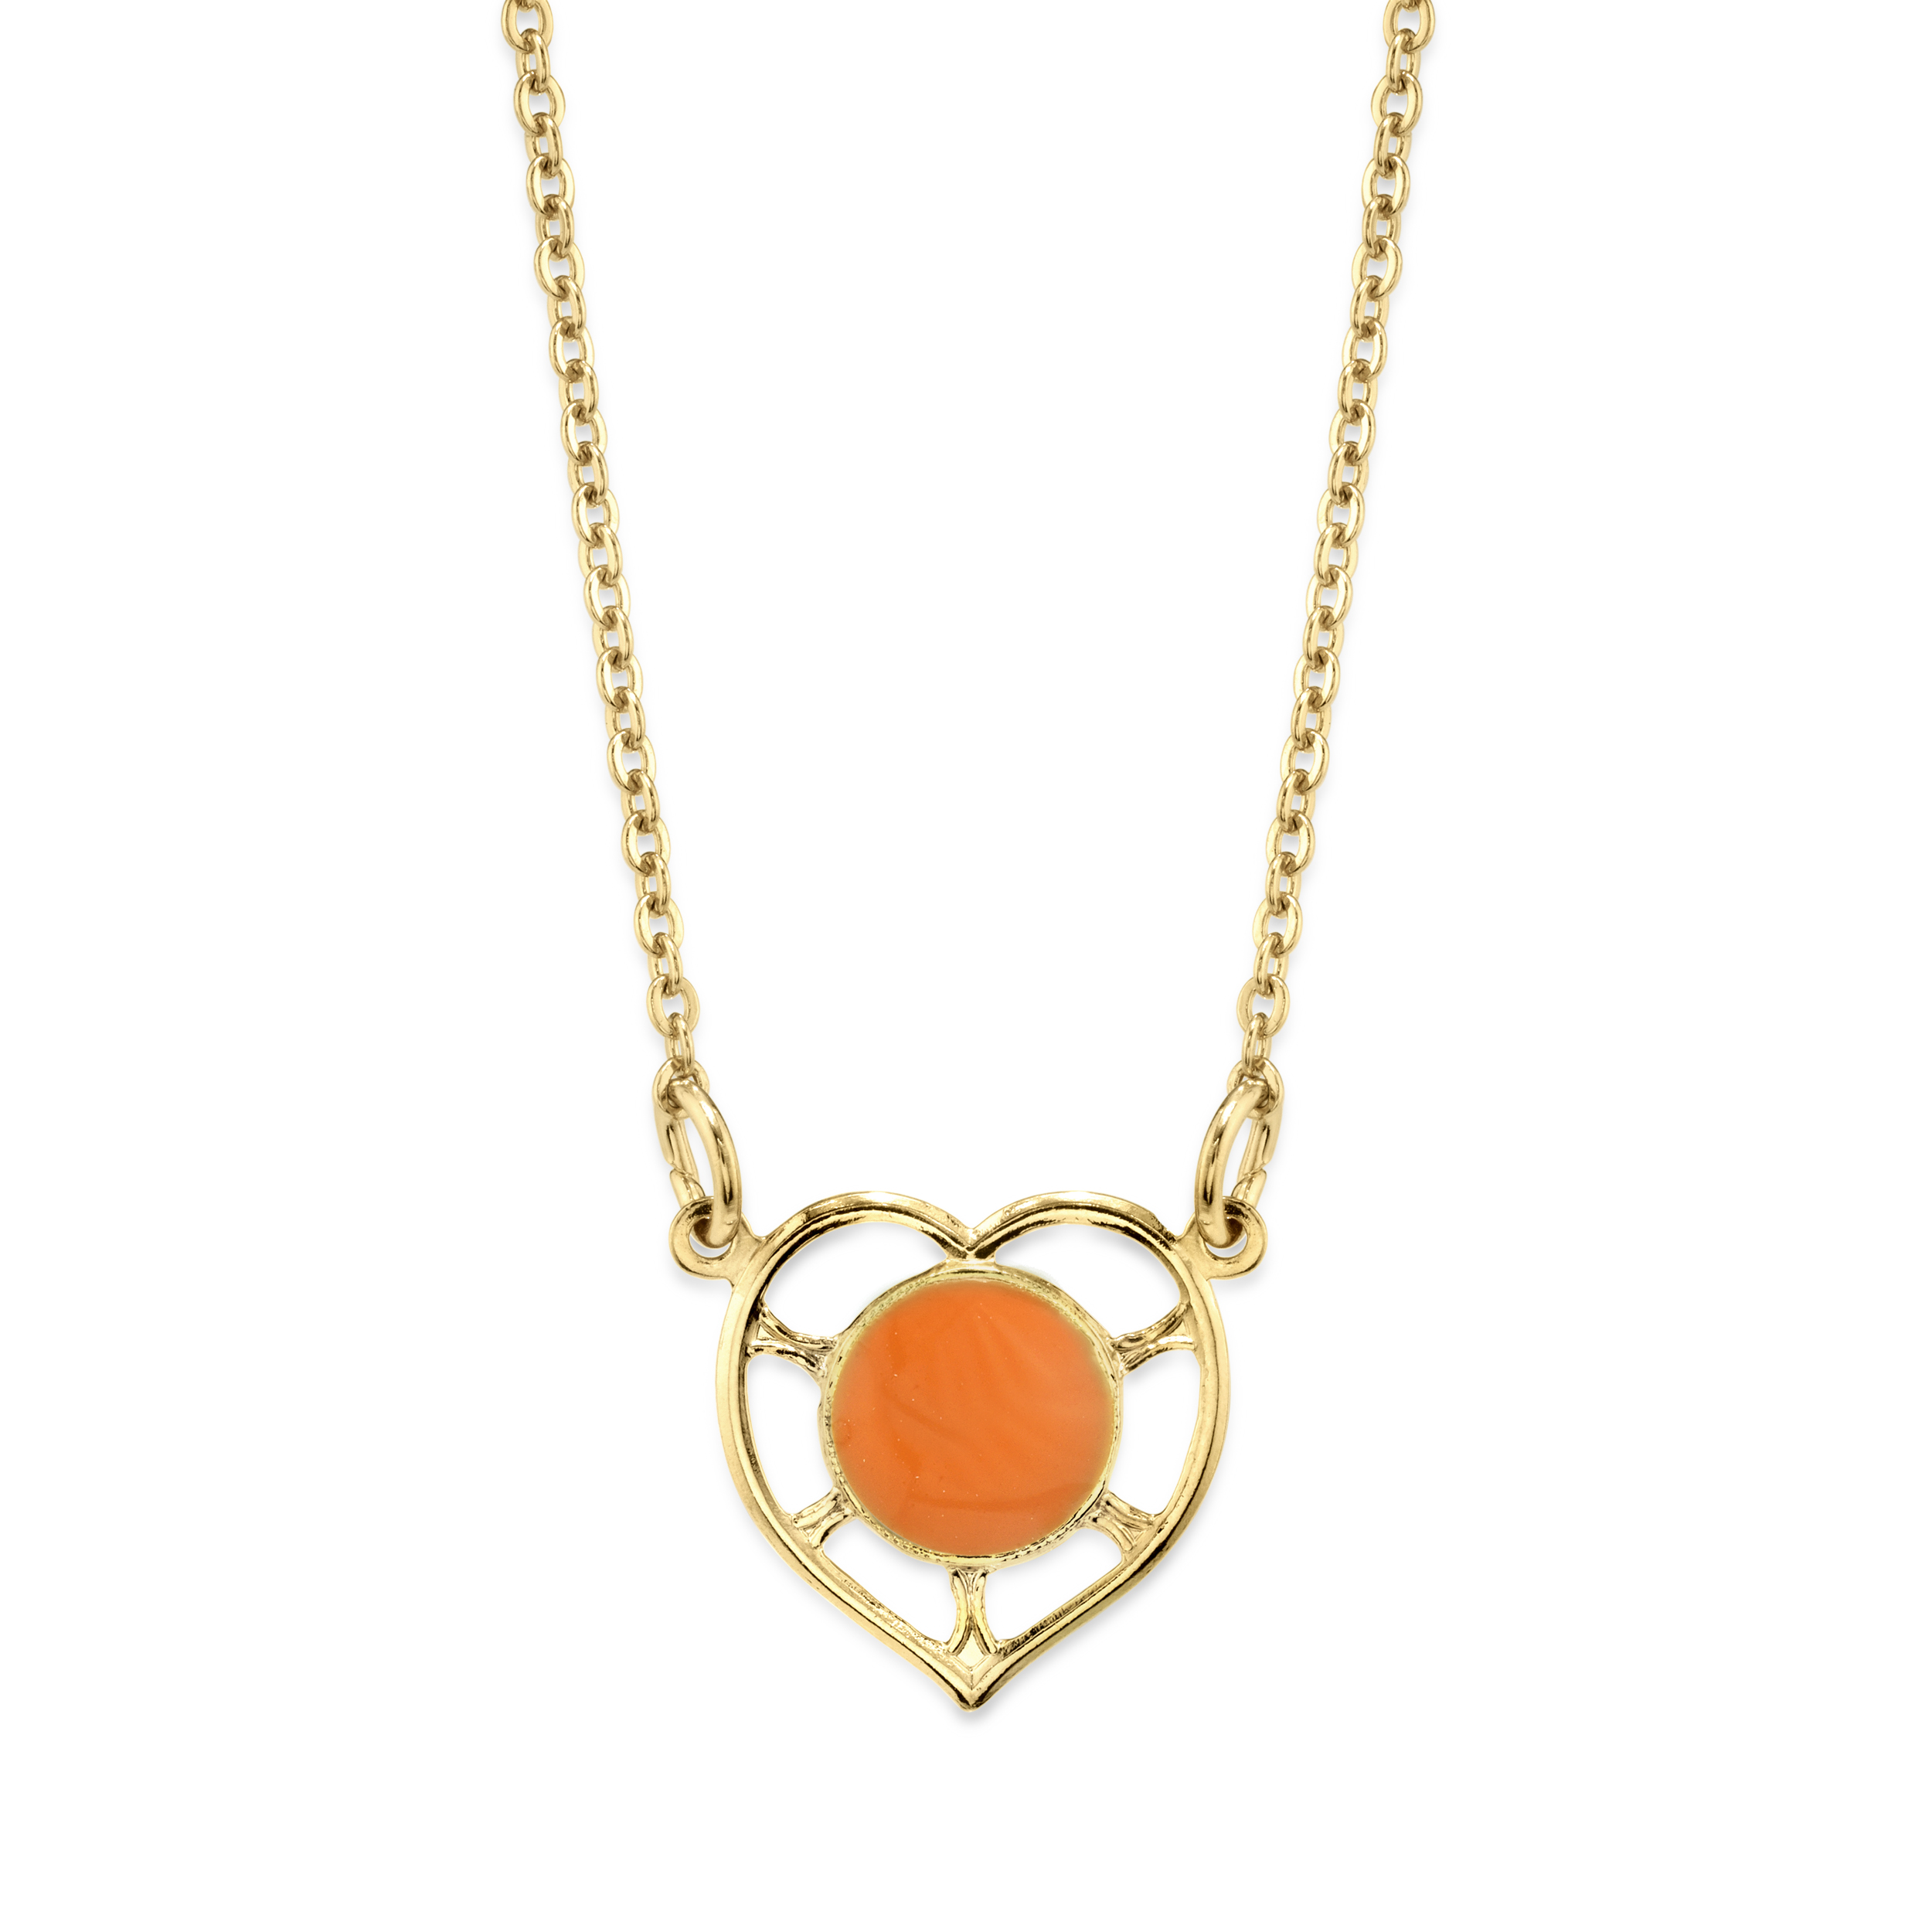 1928 Jewelry 14K Gold Dipped Heart with Small Round Circle Enamel Necklace 16